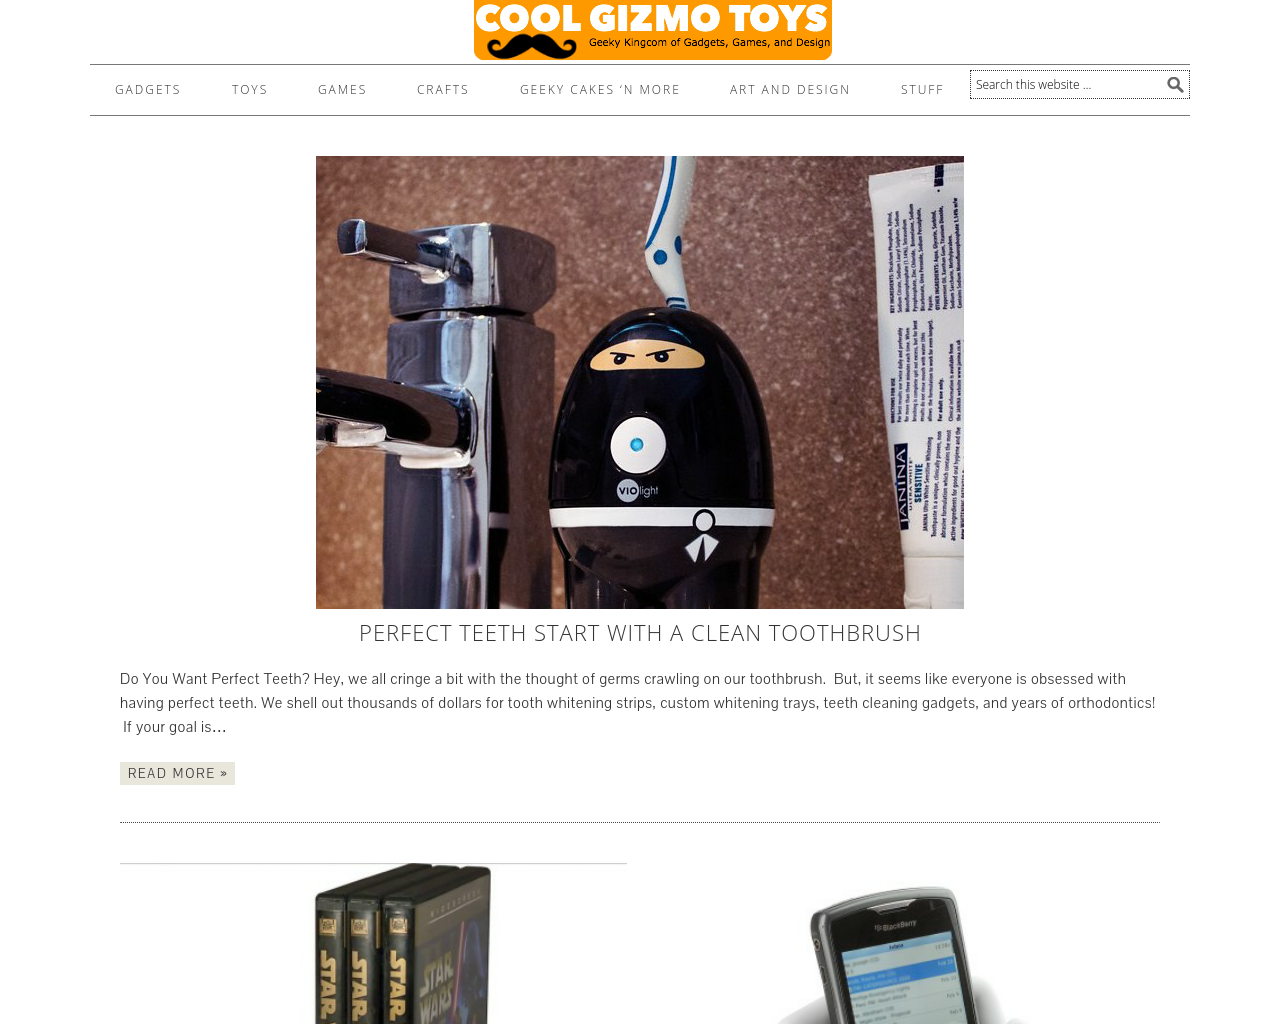 Cool-Gizmo-Toys-Advertising-Reviews-Pricing